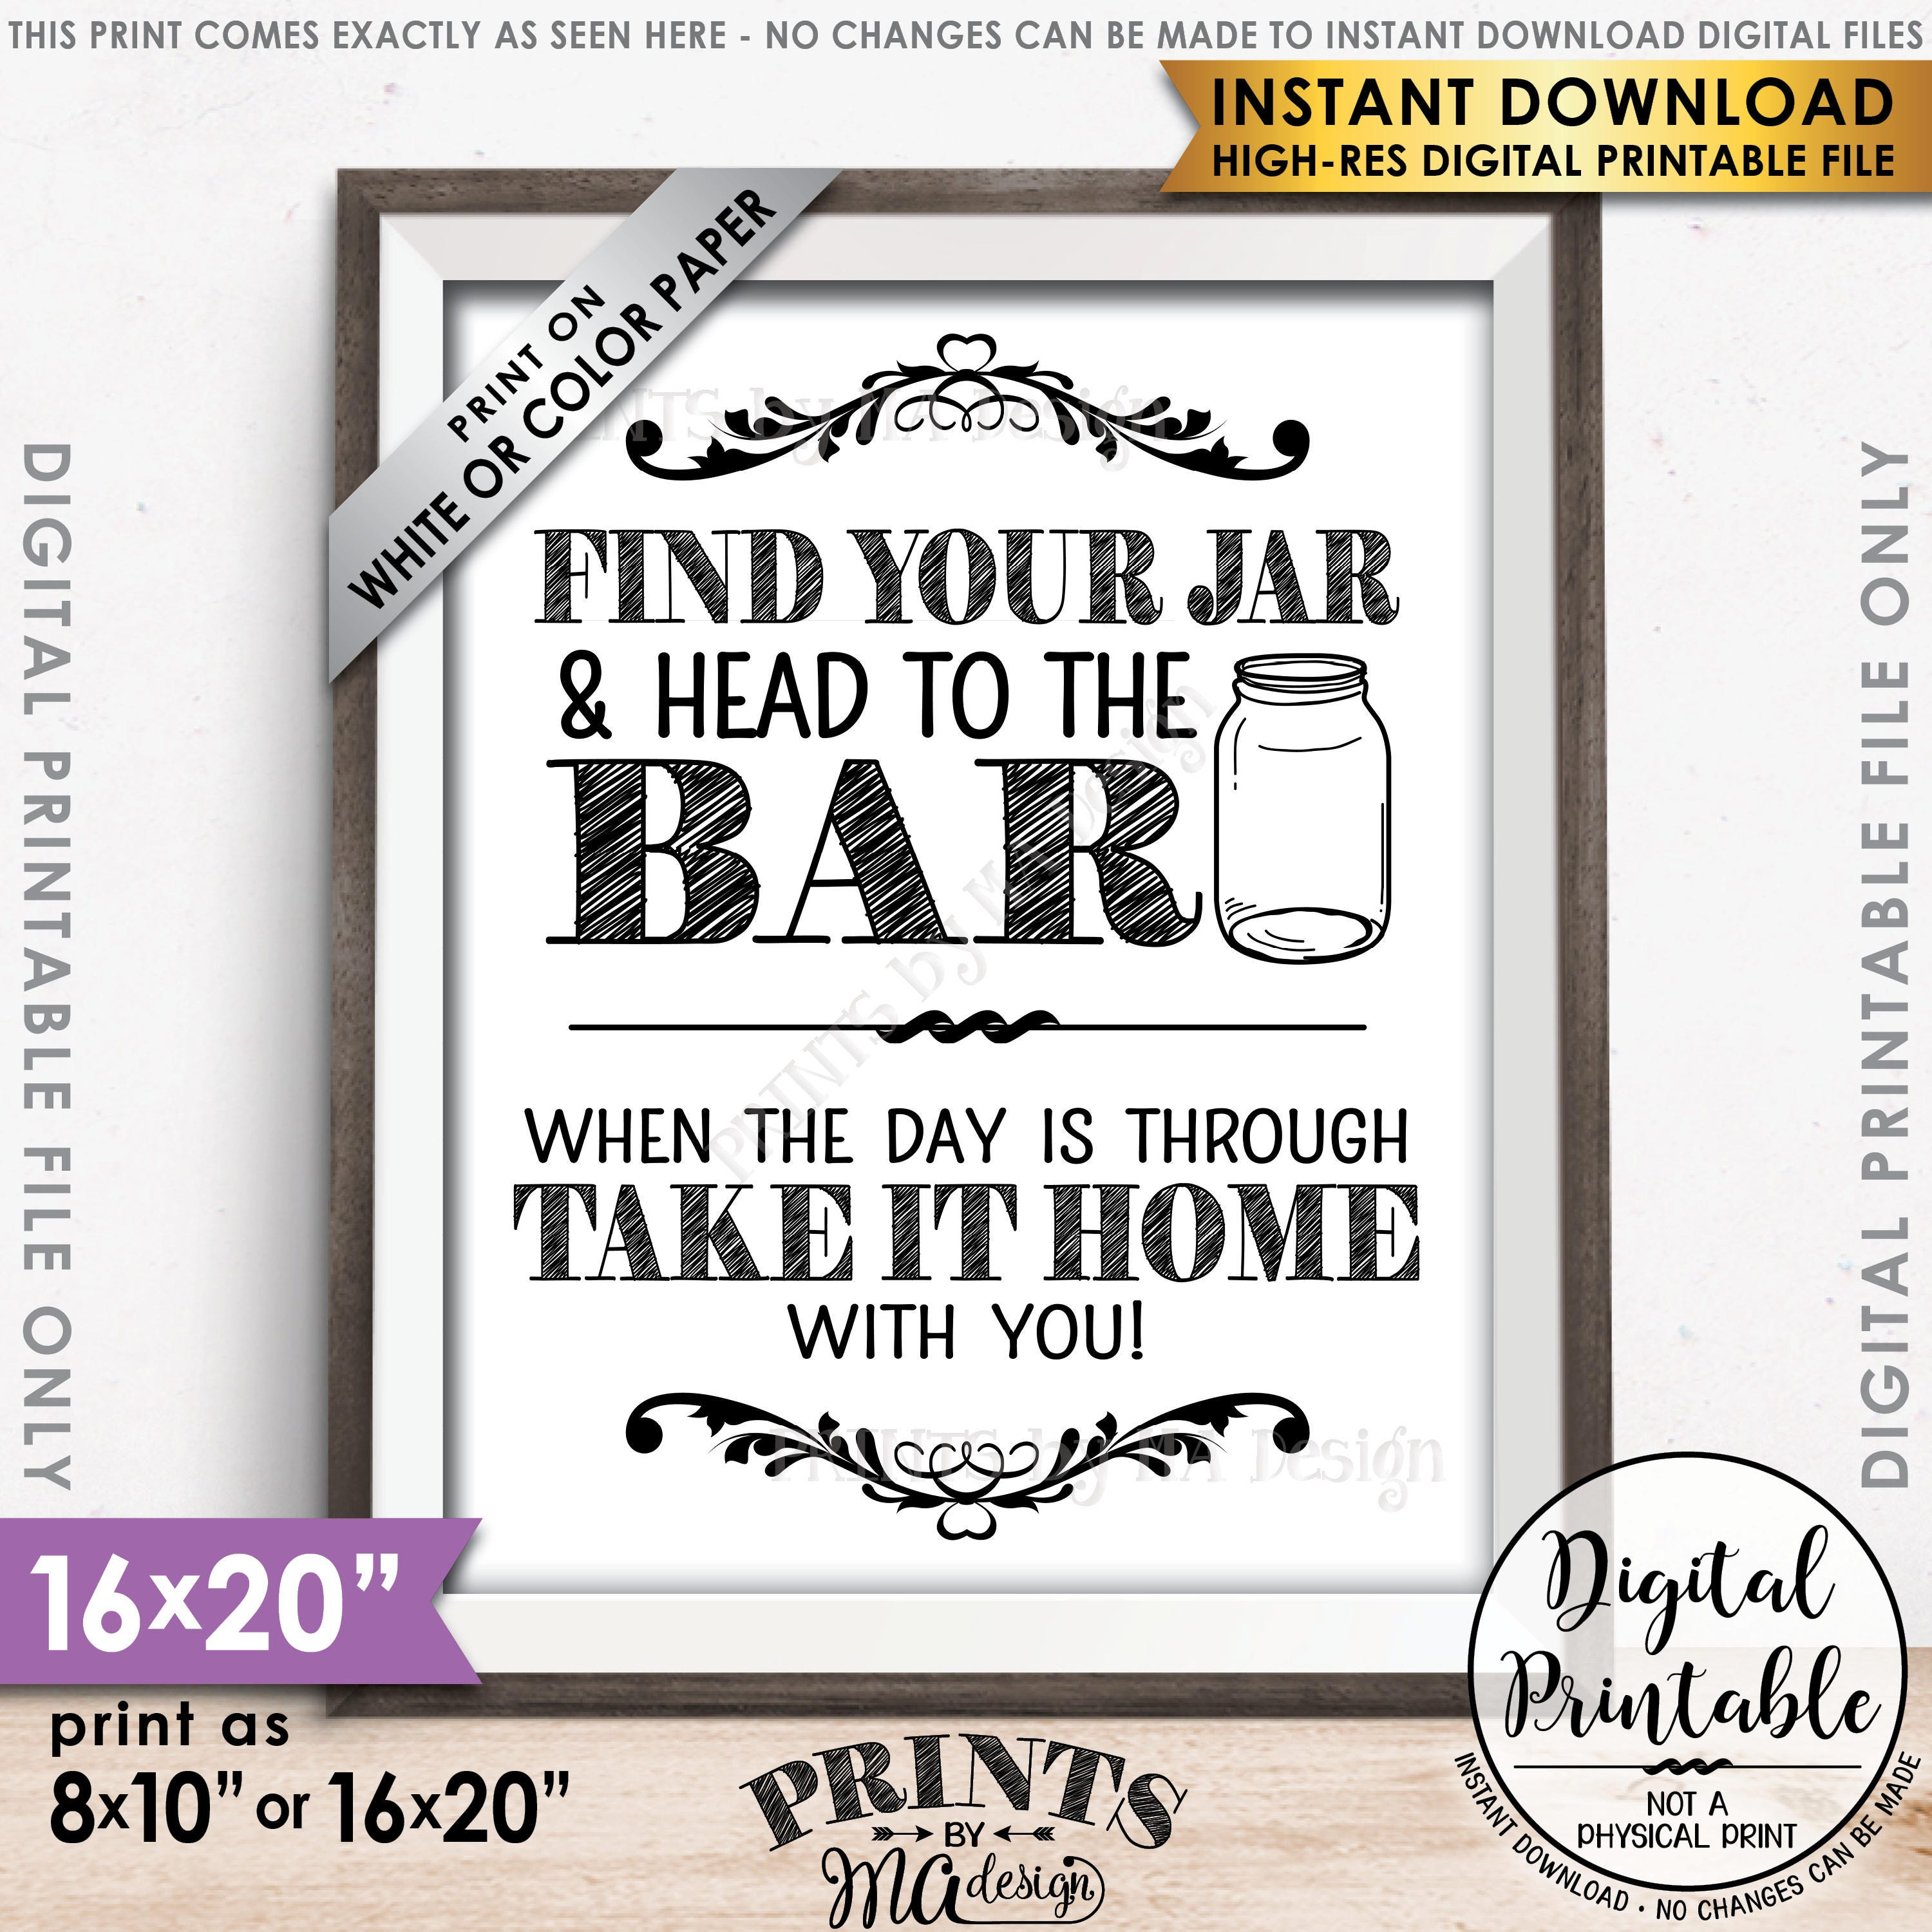 graphic regarding Head in a Jar Printable called Discover Your Jar and Intellect towards the Bar, Consider Your Jar towards the Bar